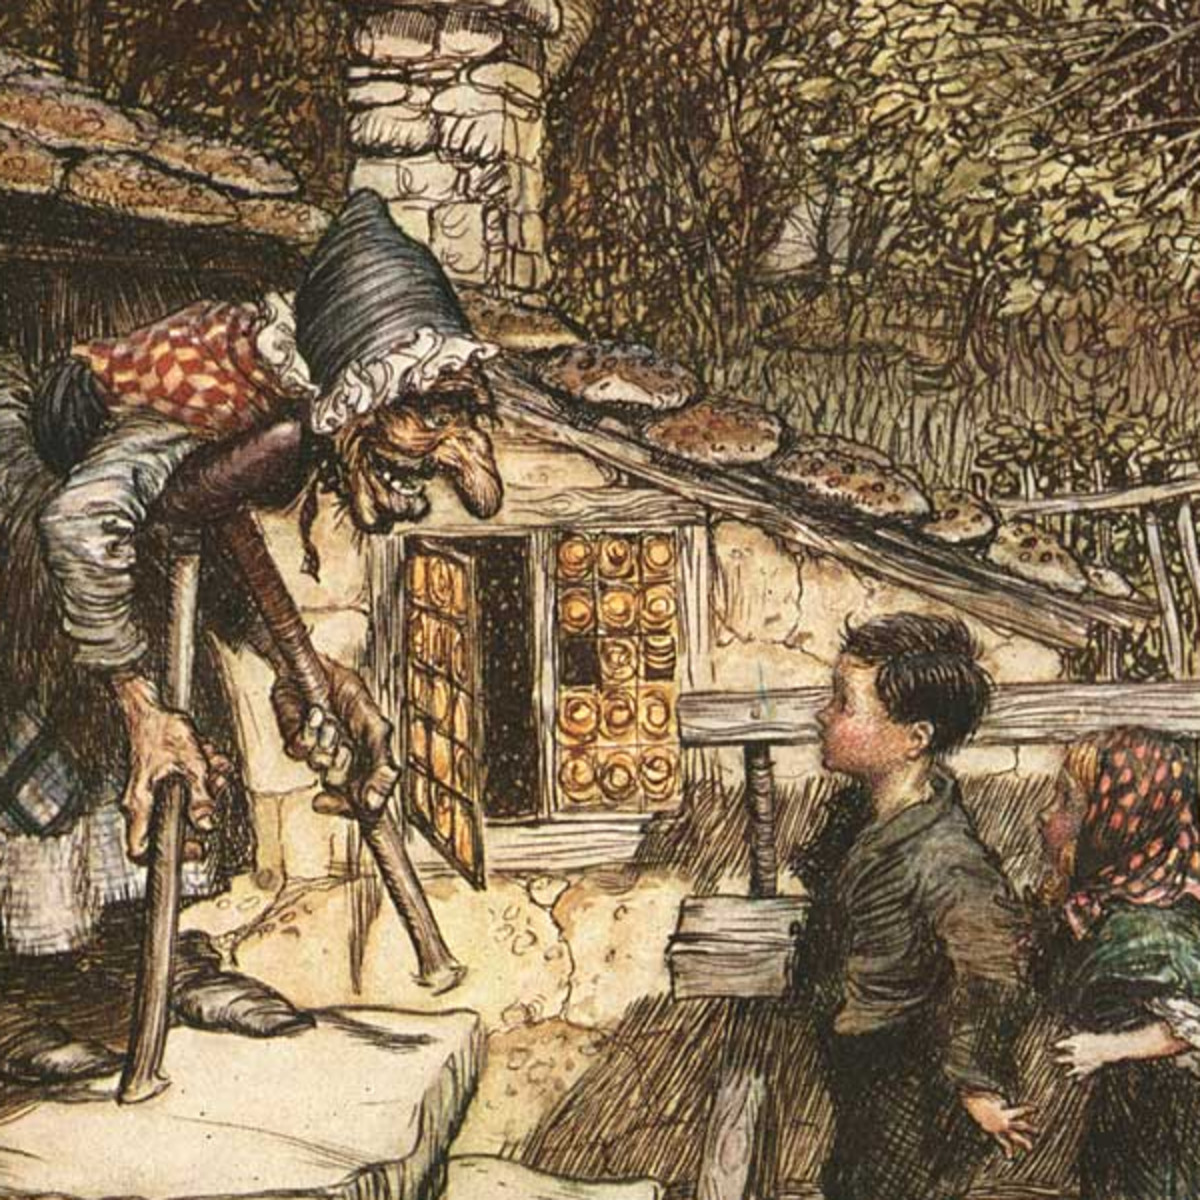 "Here we show a portion of 'All at once the door opened and an old, old Woman, supporting herself on a crutch, came hobbling out' - a design by Arthur Rackham from his suite published in ""The Fairy Tales of the Brothers Grimm"" (1909)."